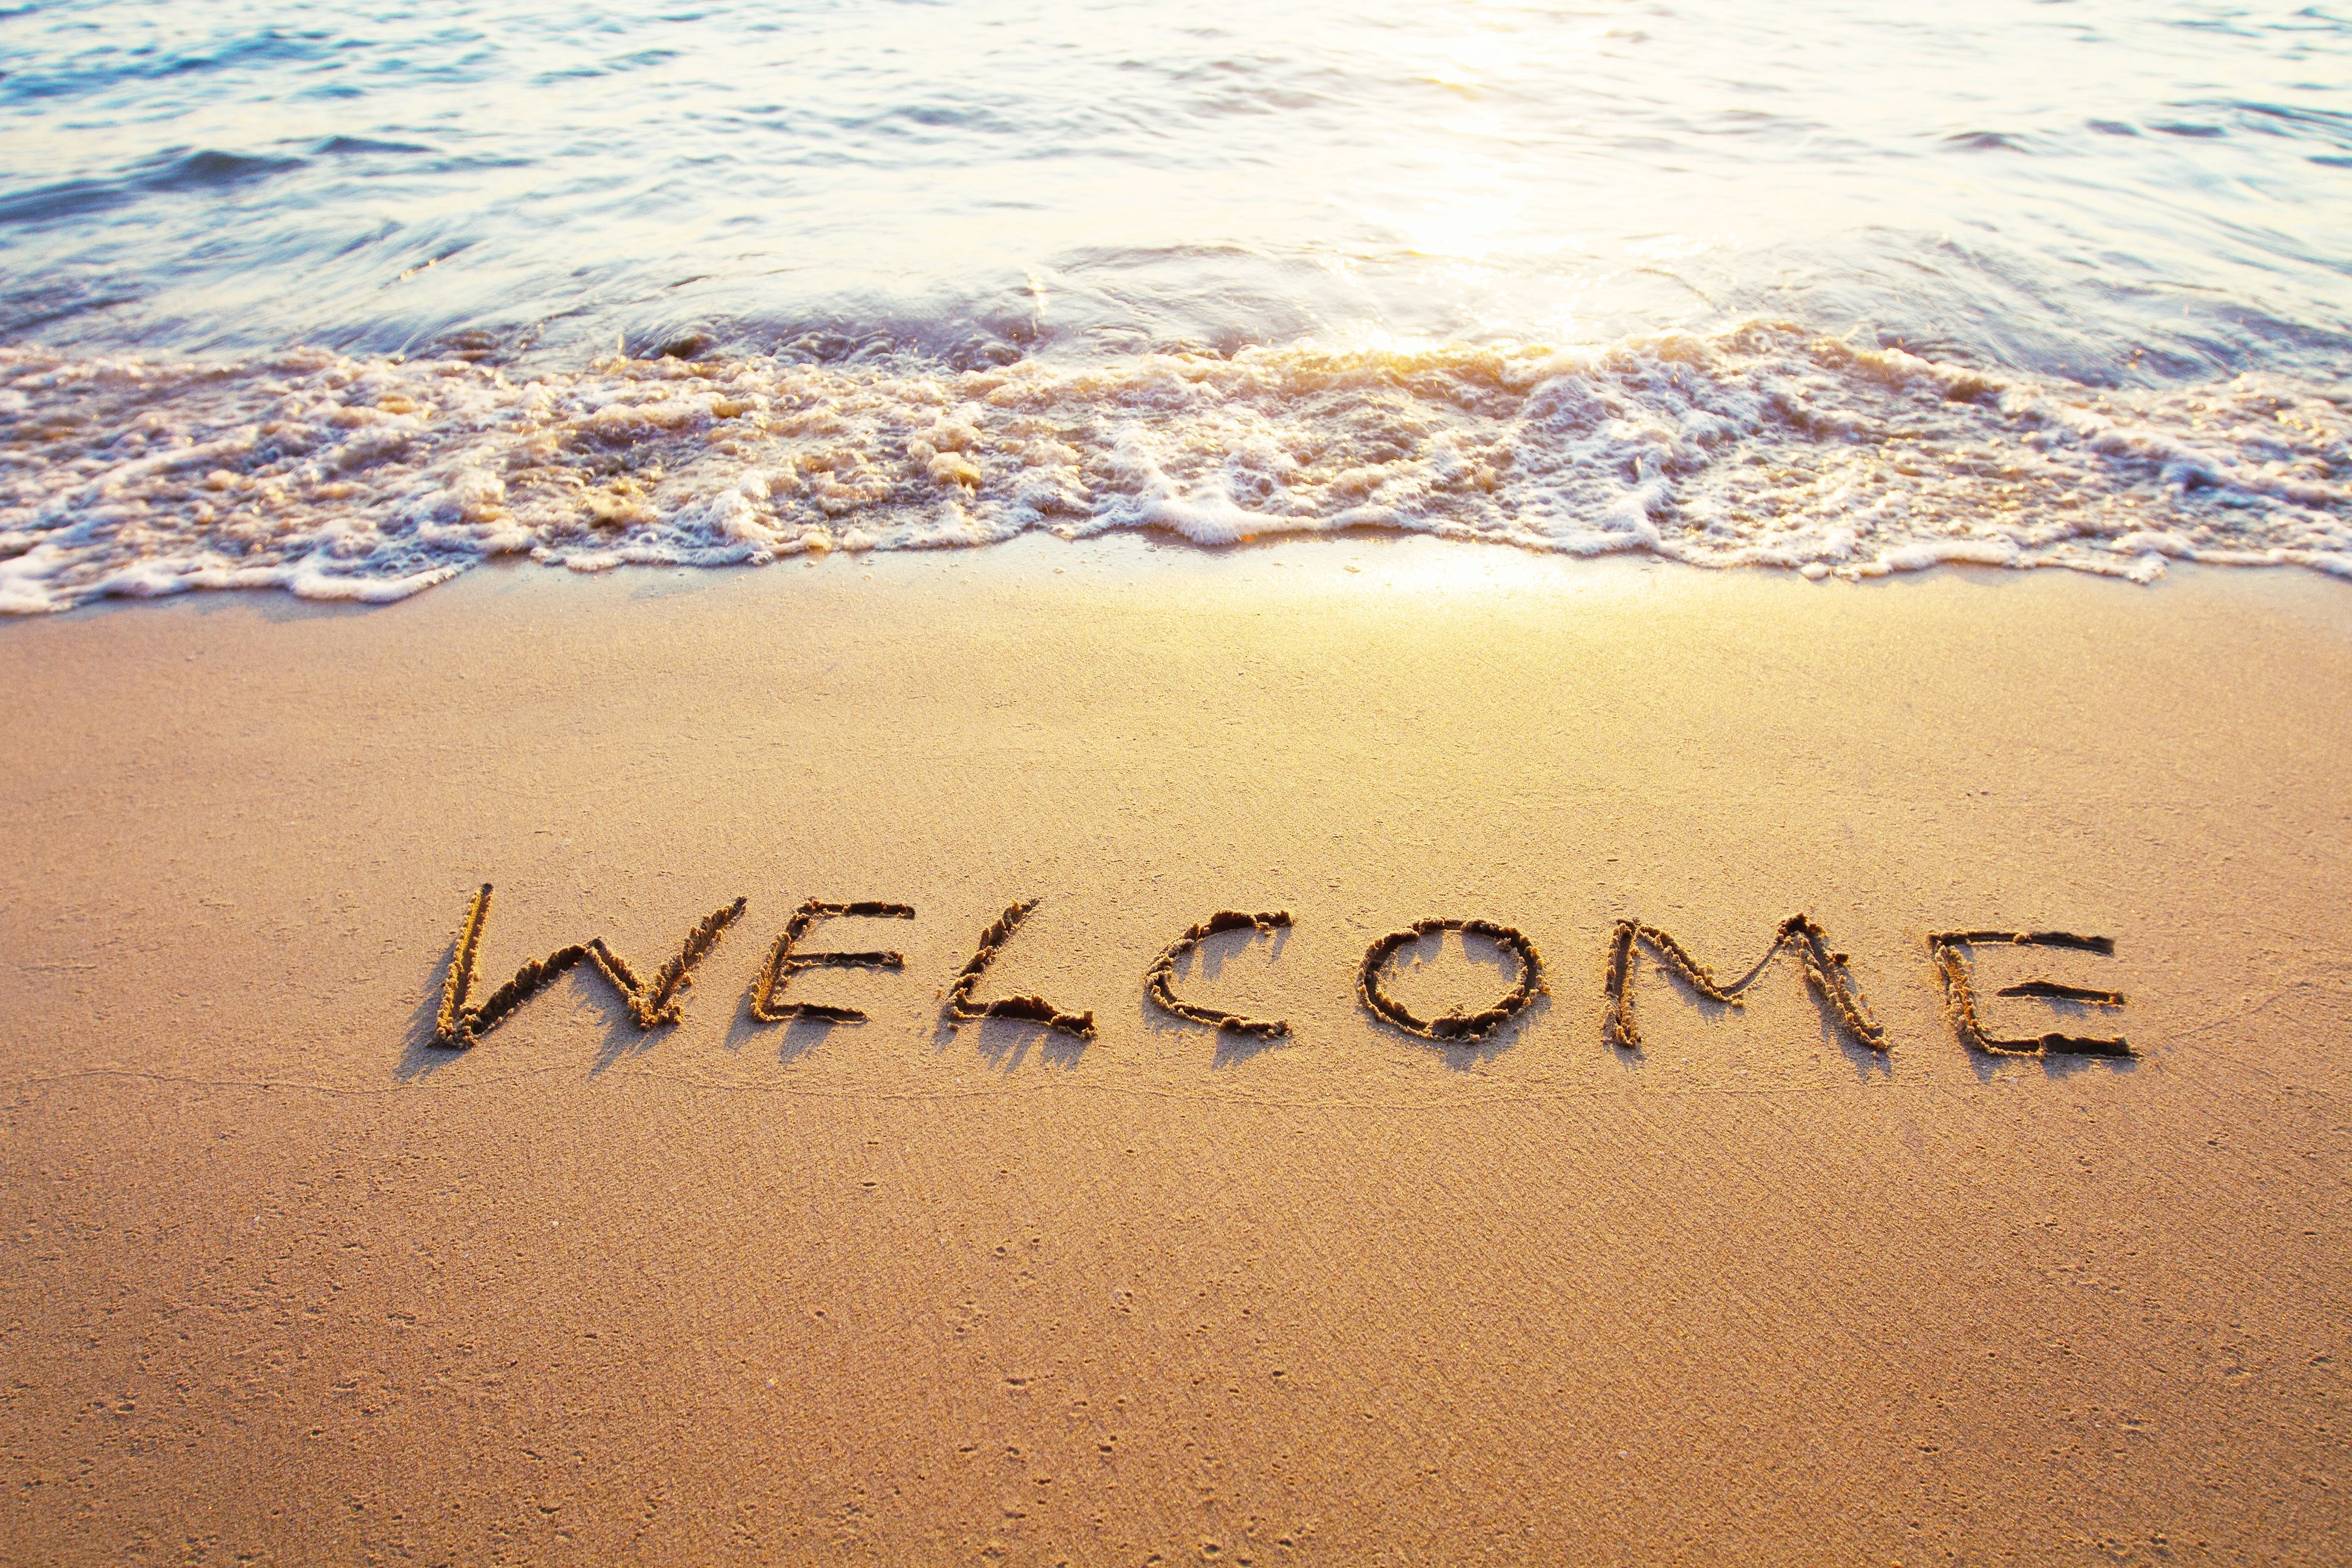 Capt 13.- Le llamaban Welcome